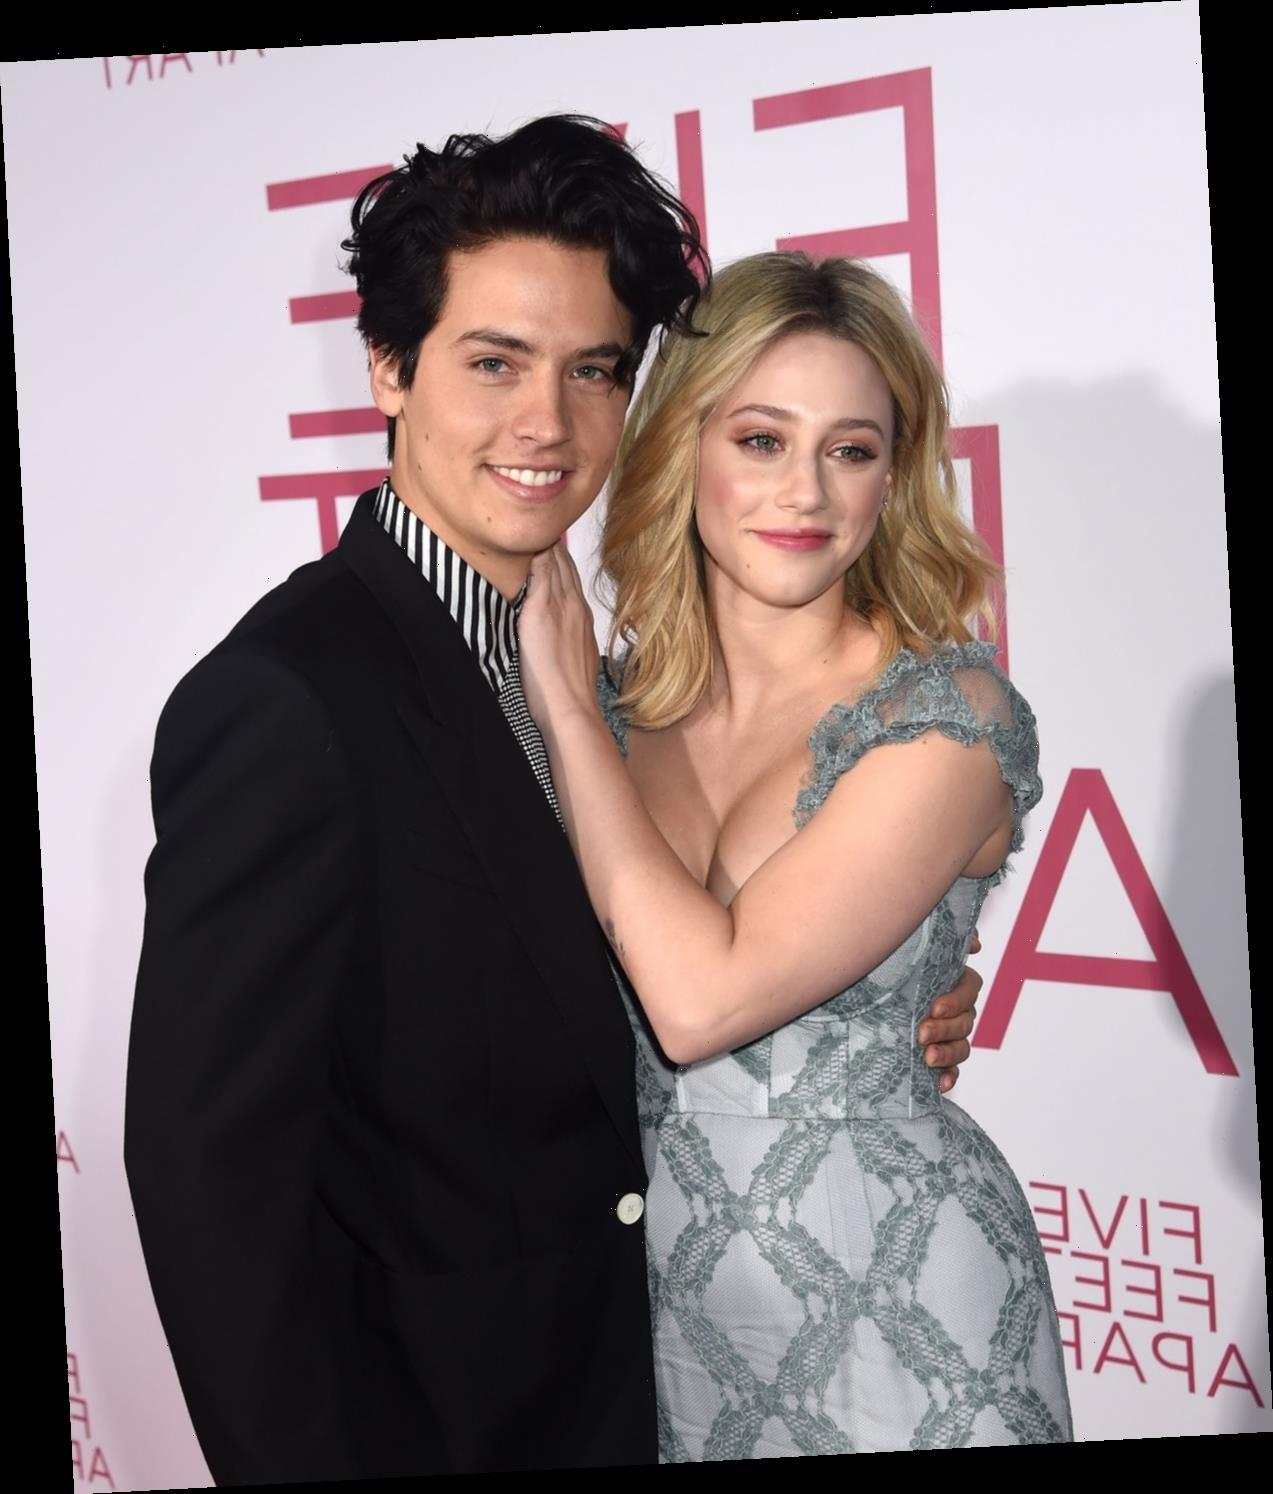 Lili Reinhart's Reaction To Cole Sprouse's People's Choice Awards Win Was Epic